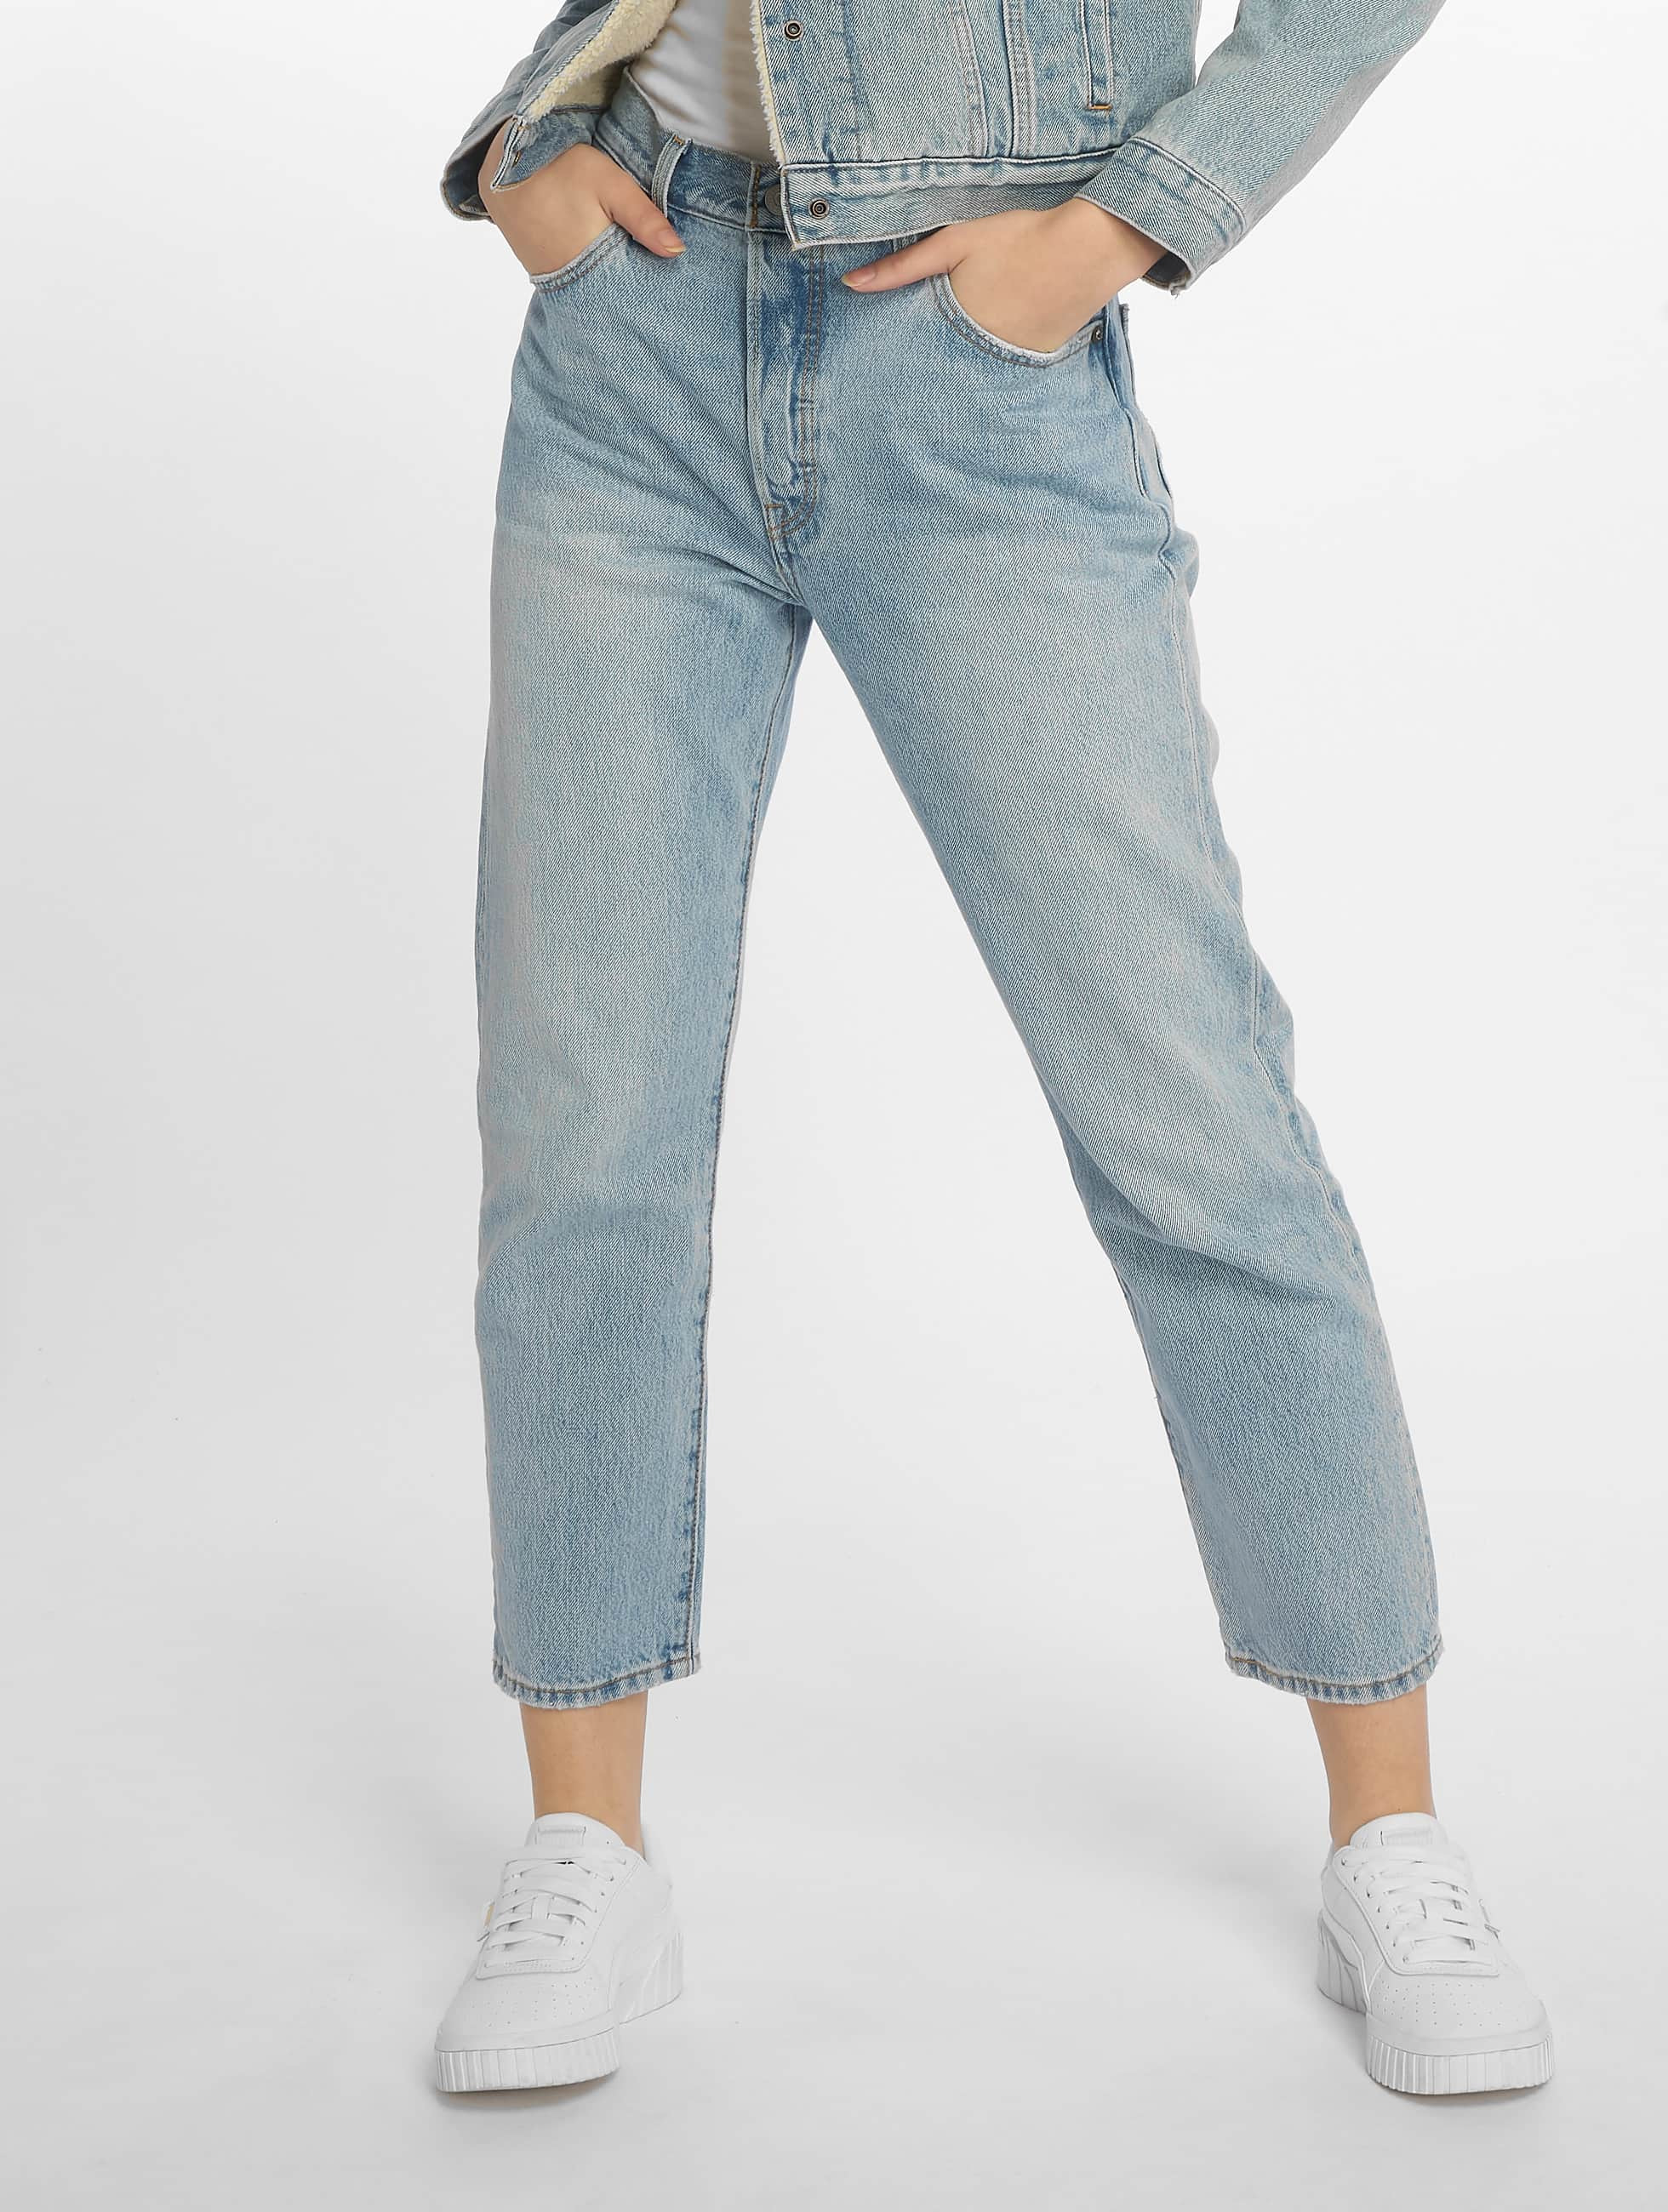 Levis 501 Femme Coupe Droite Levi S 501 Crop Lovefool Straight Fit Jeans Med Indigo Worn In